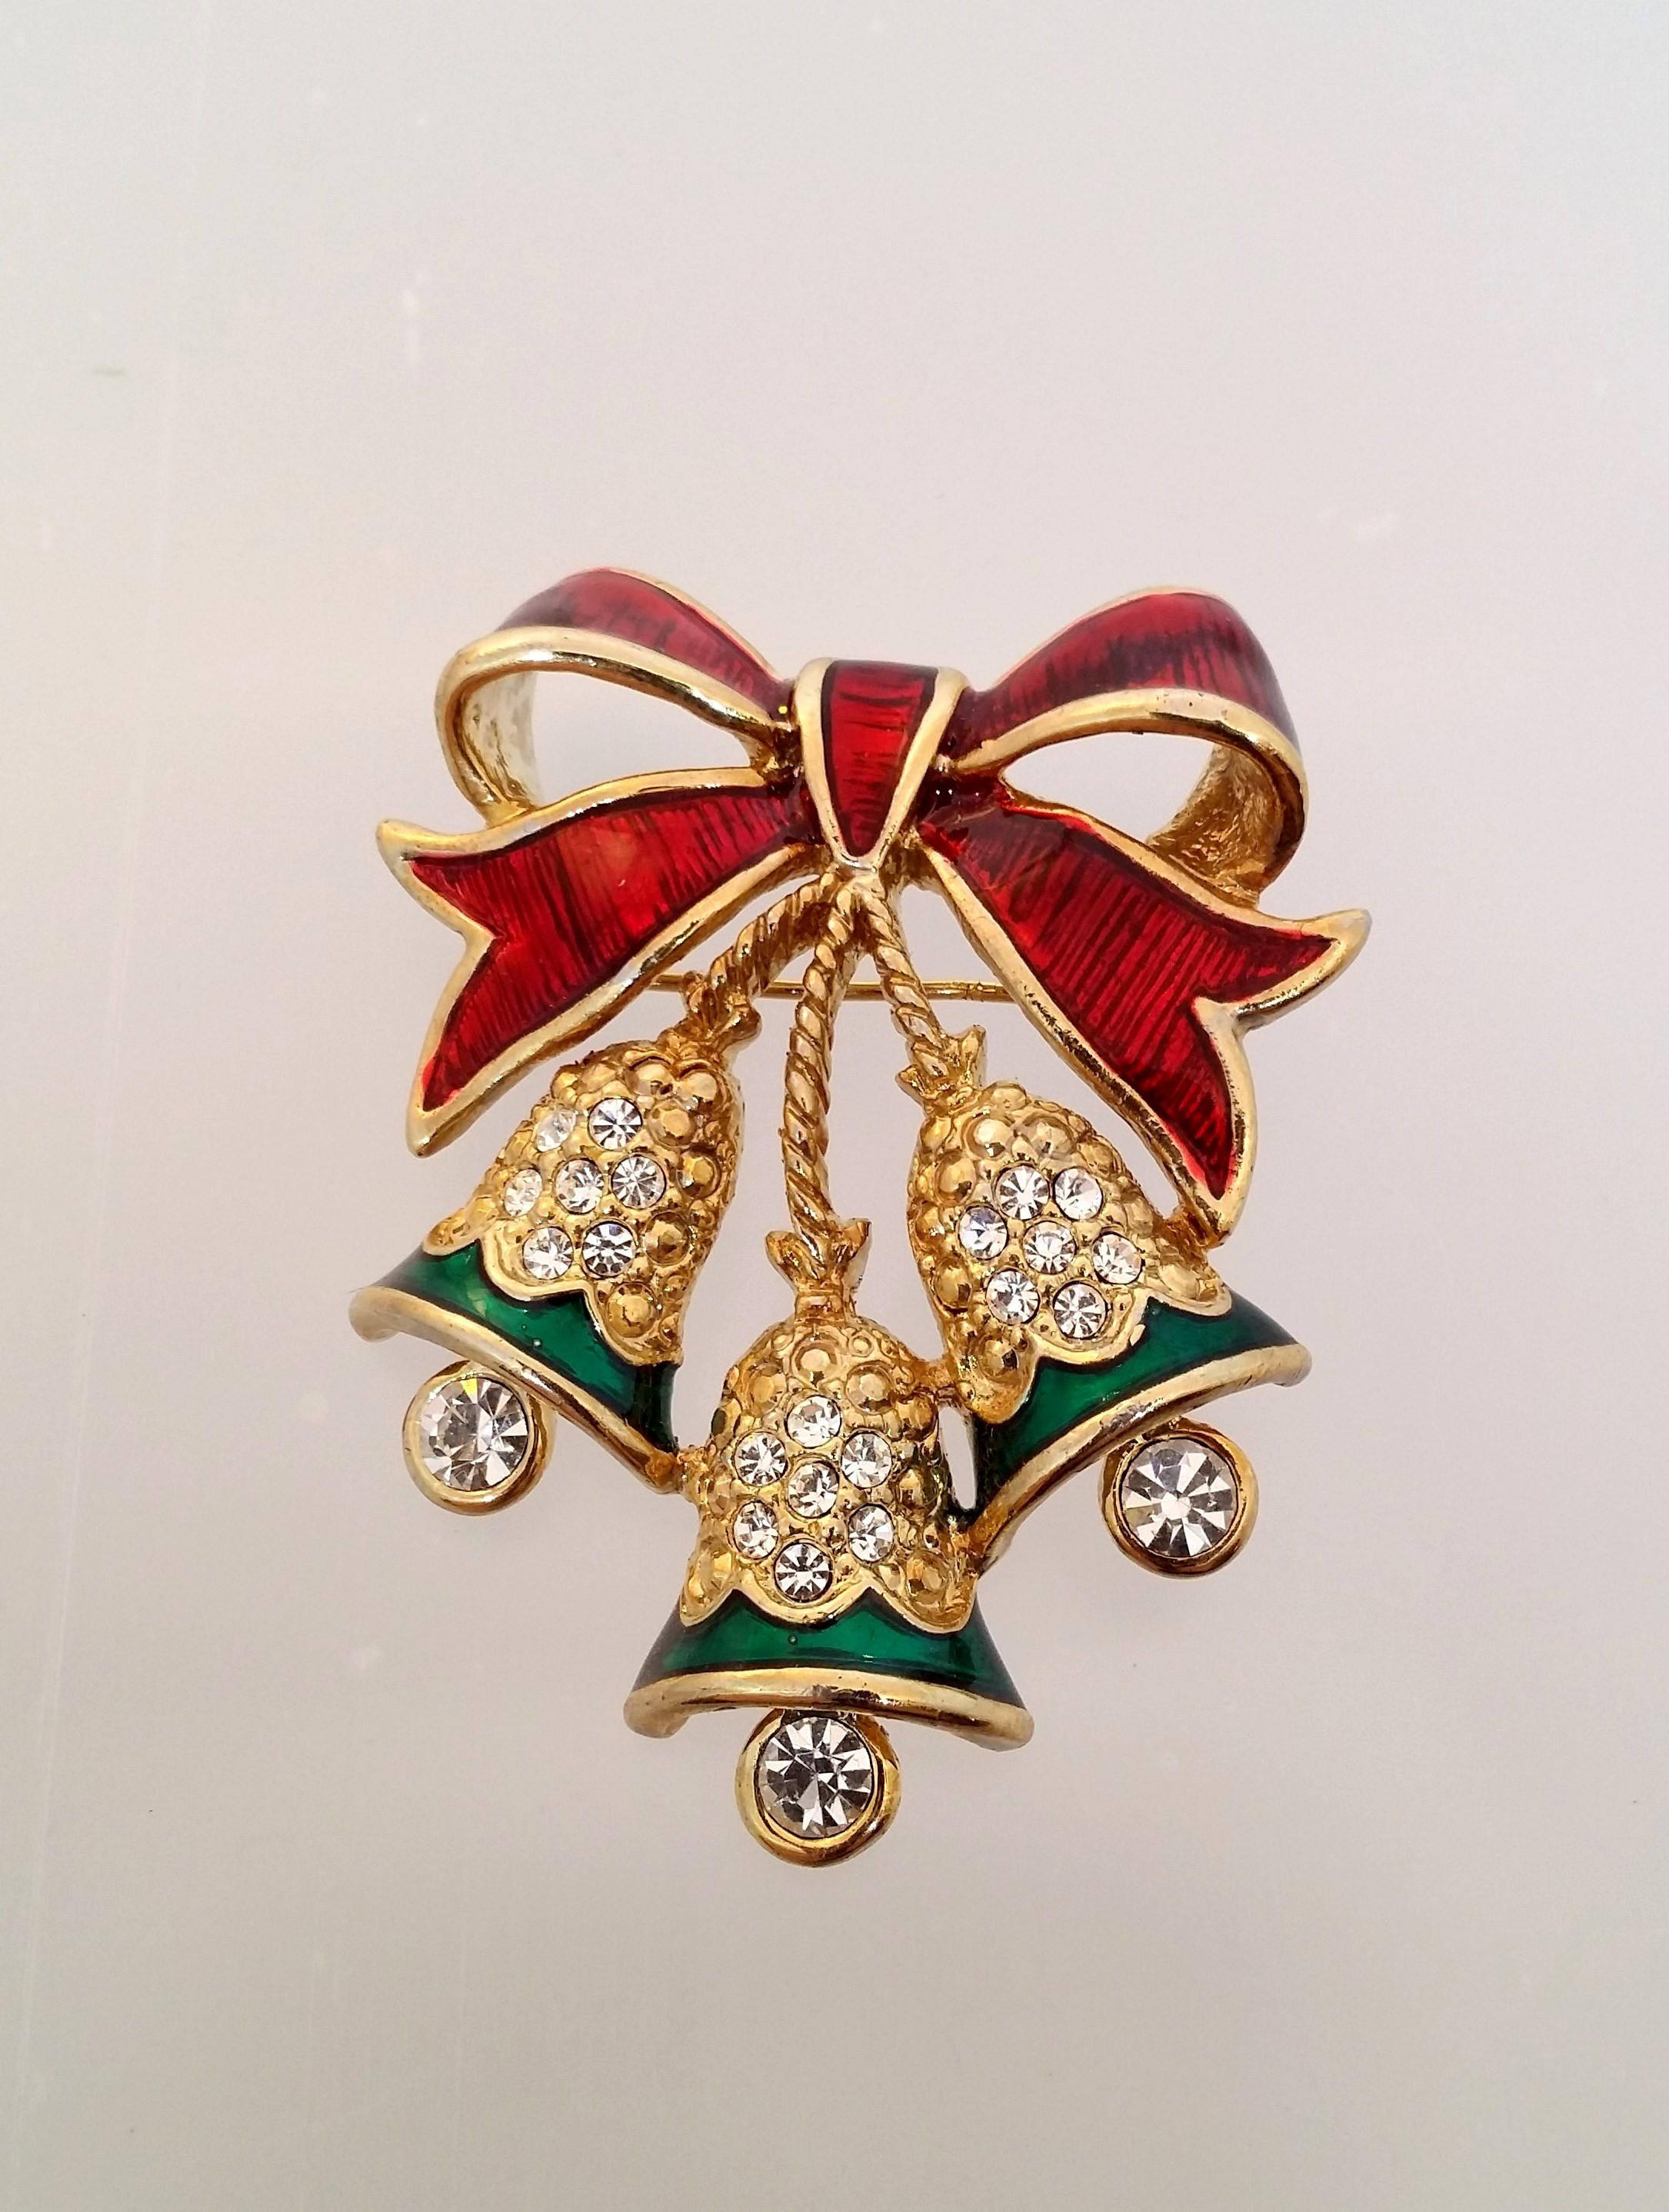 Rhinestone Christmas Bell Pin Enamel Xmas Bells u0026 Bow Brooch Holiday Costume Jewelry by : holiday costume jewelry  - Germanpascual.Com